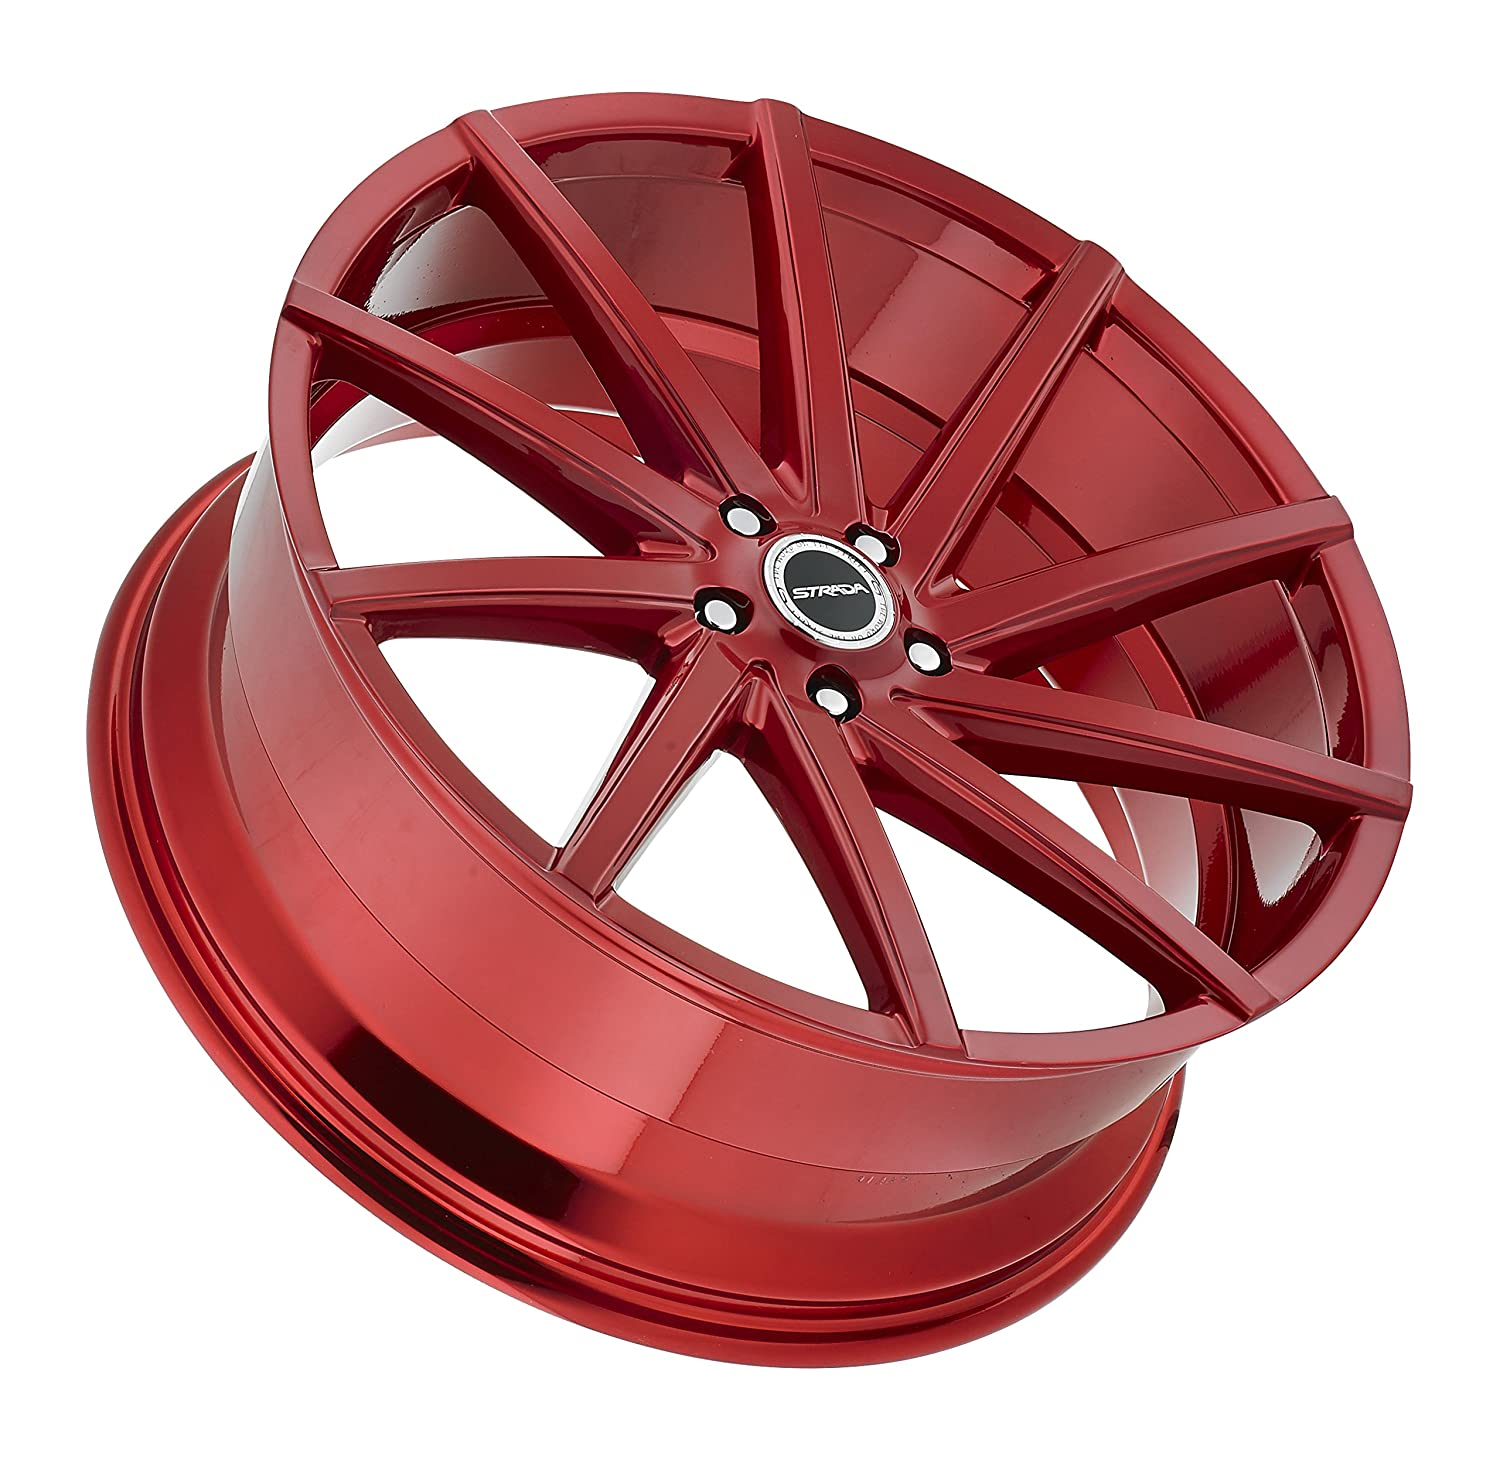 20 Inch Strada Sega Candy Apple Red Wheels Rims Only Chevy Truck Color Set Of 4 Fits Audi Mercedes Bmw Infiniti Dodge Cadillac Ford Lexus Tesla Nissan